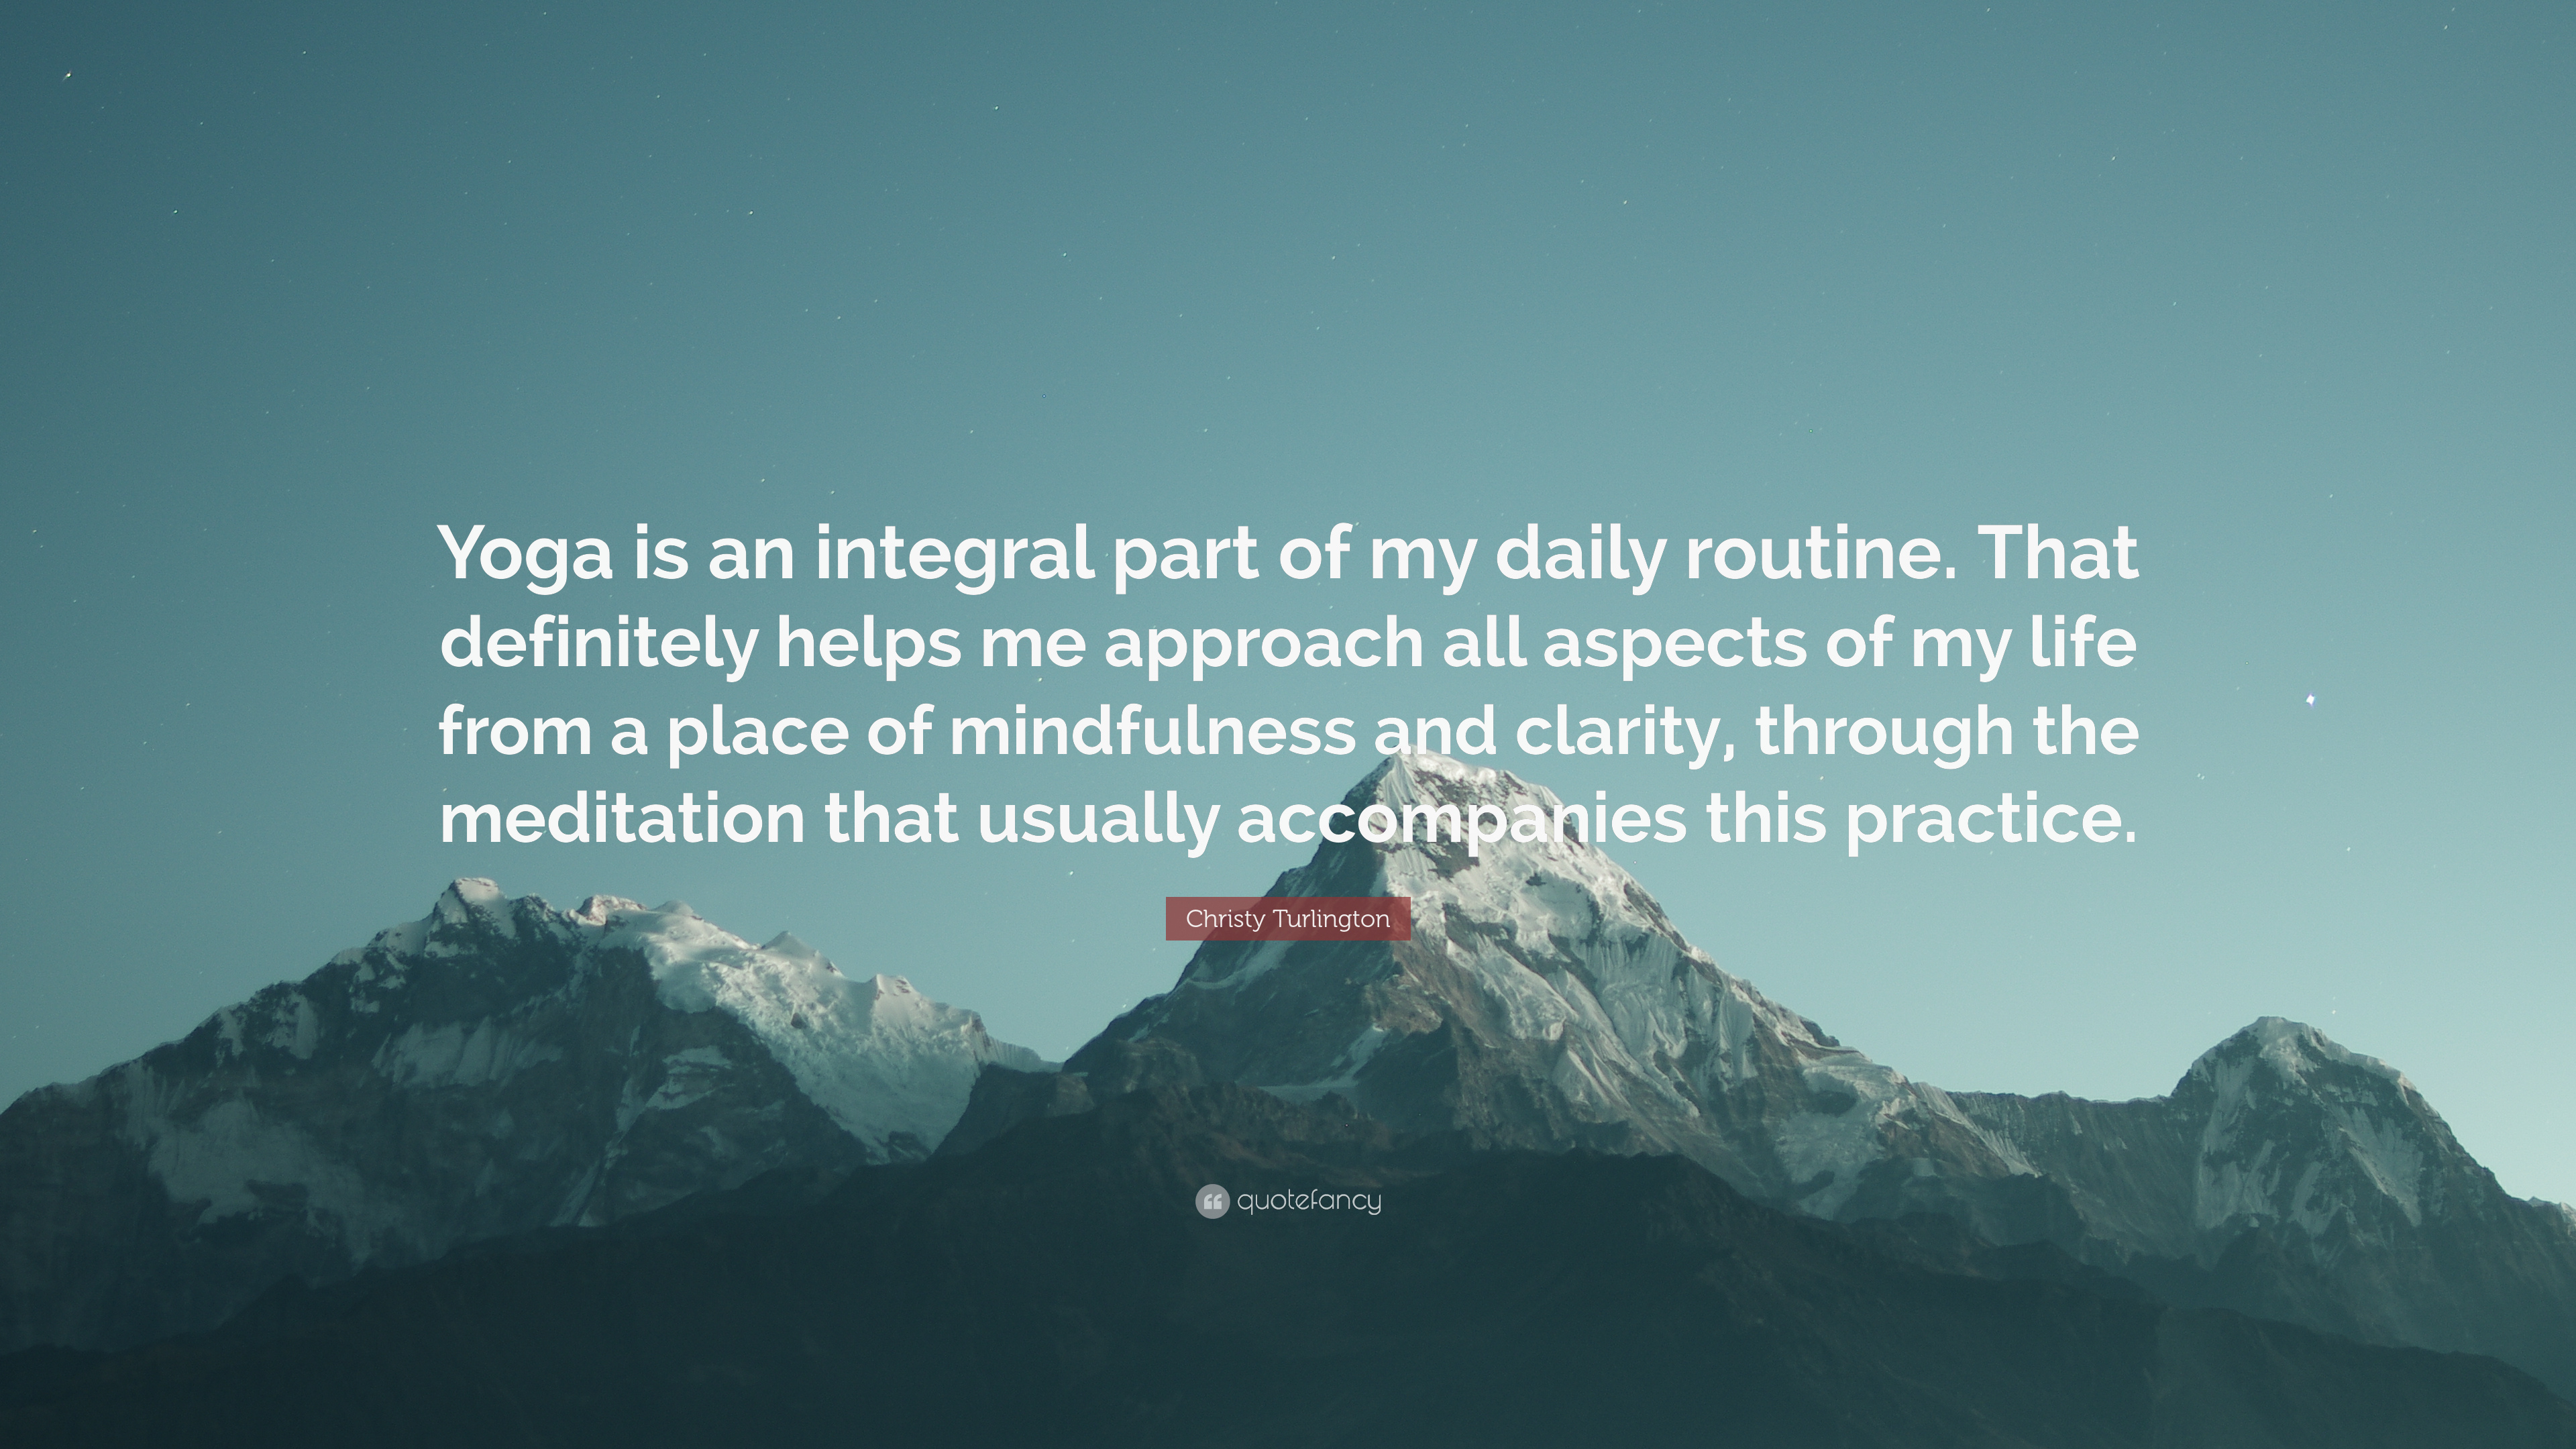 Christy Turlington Quote Yoga Is An Integral Part Of My Daily Routine That Definitely Helps Me Approach All Aspects Of My Life From A Place Of M 7 Wallpapers Quotefancy